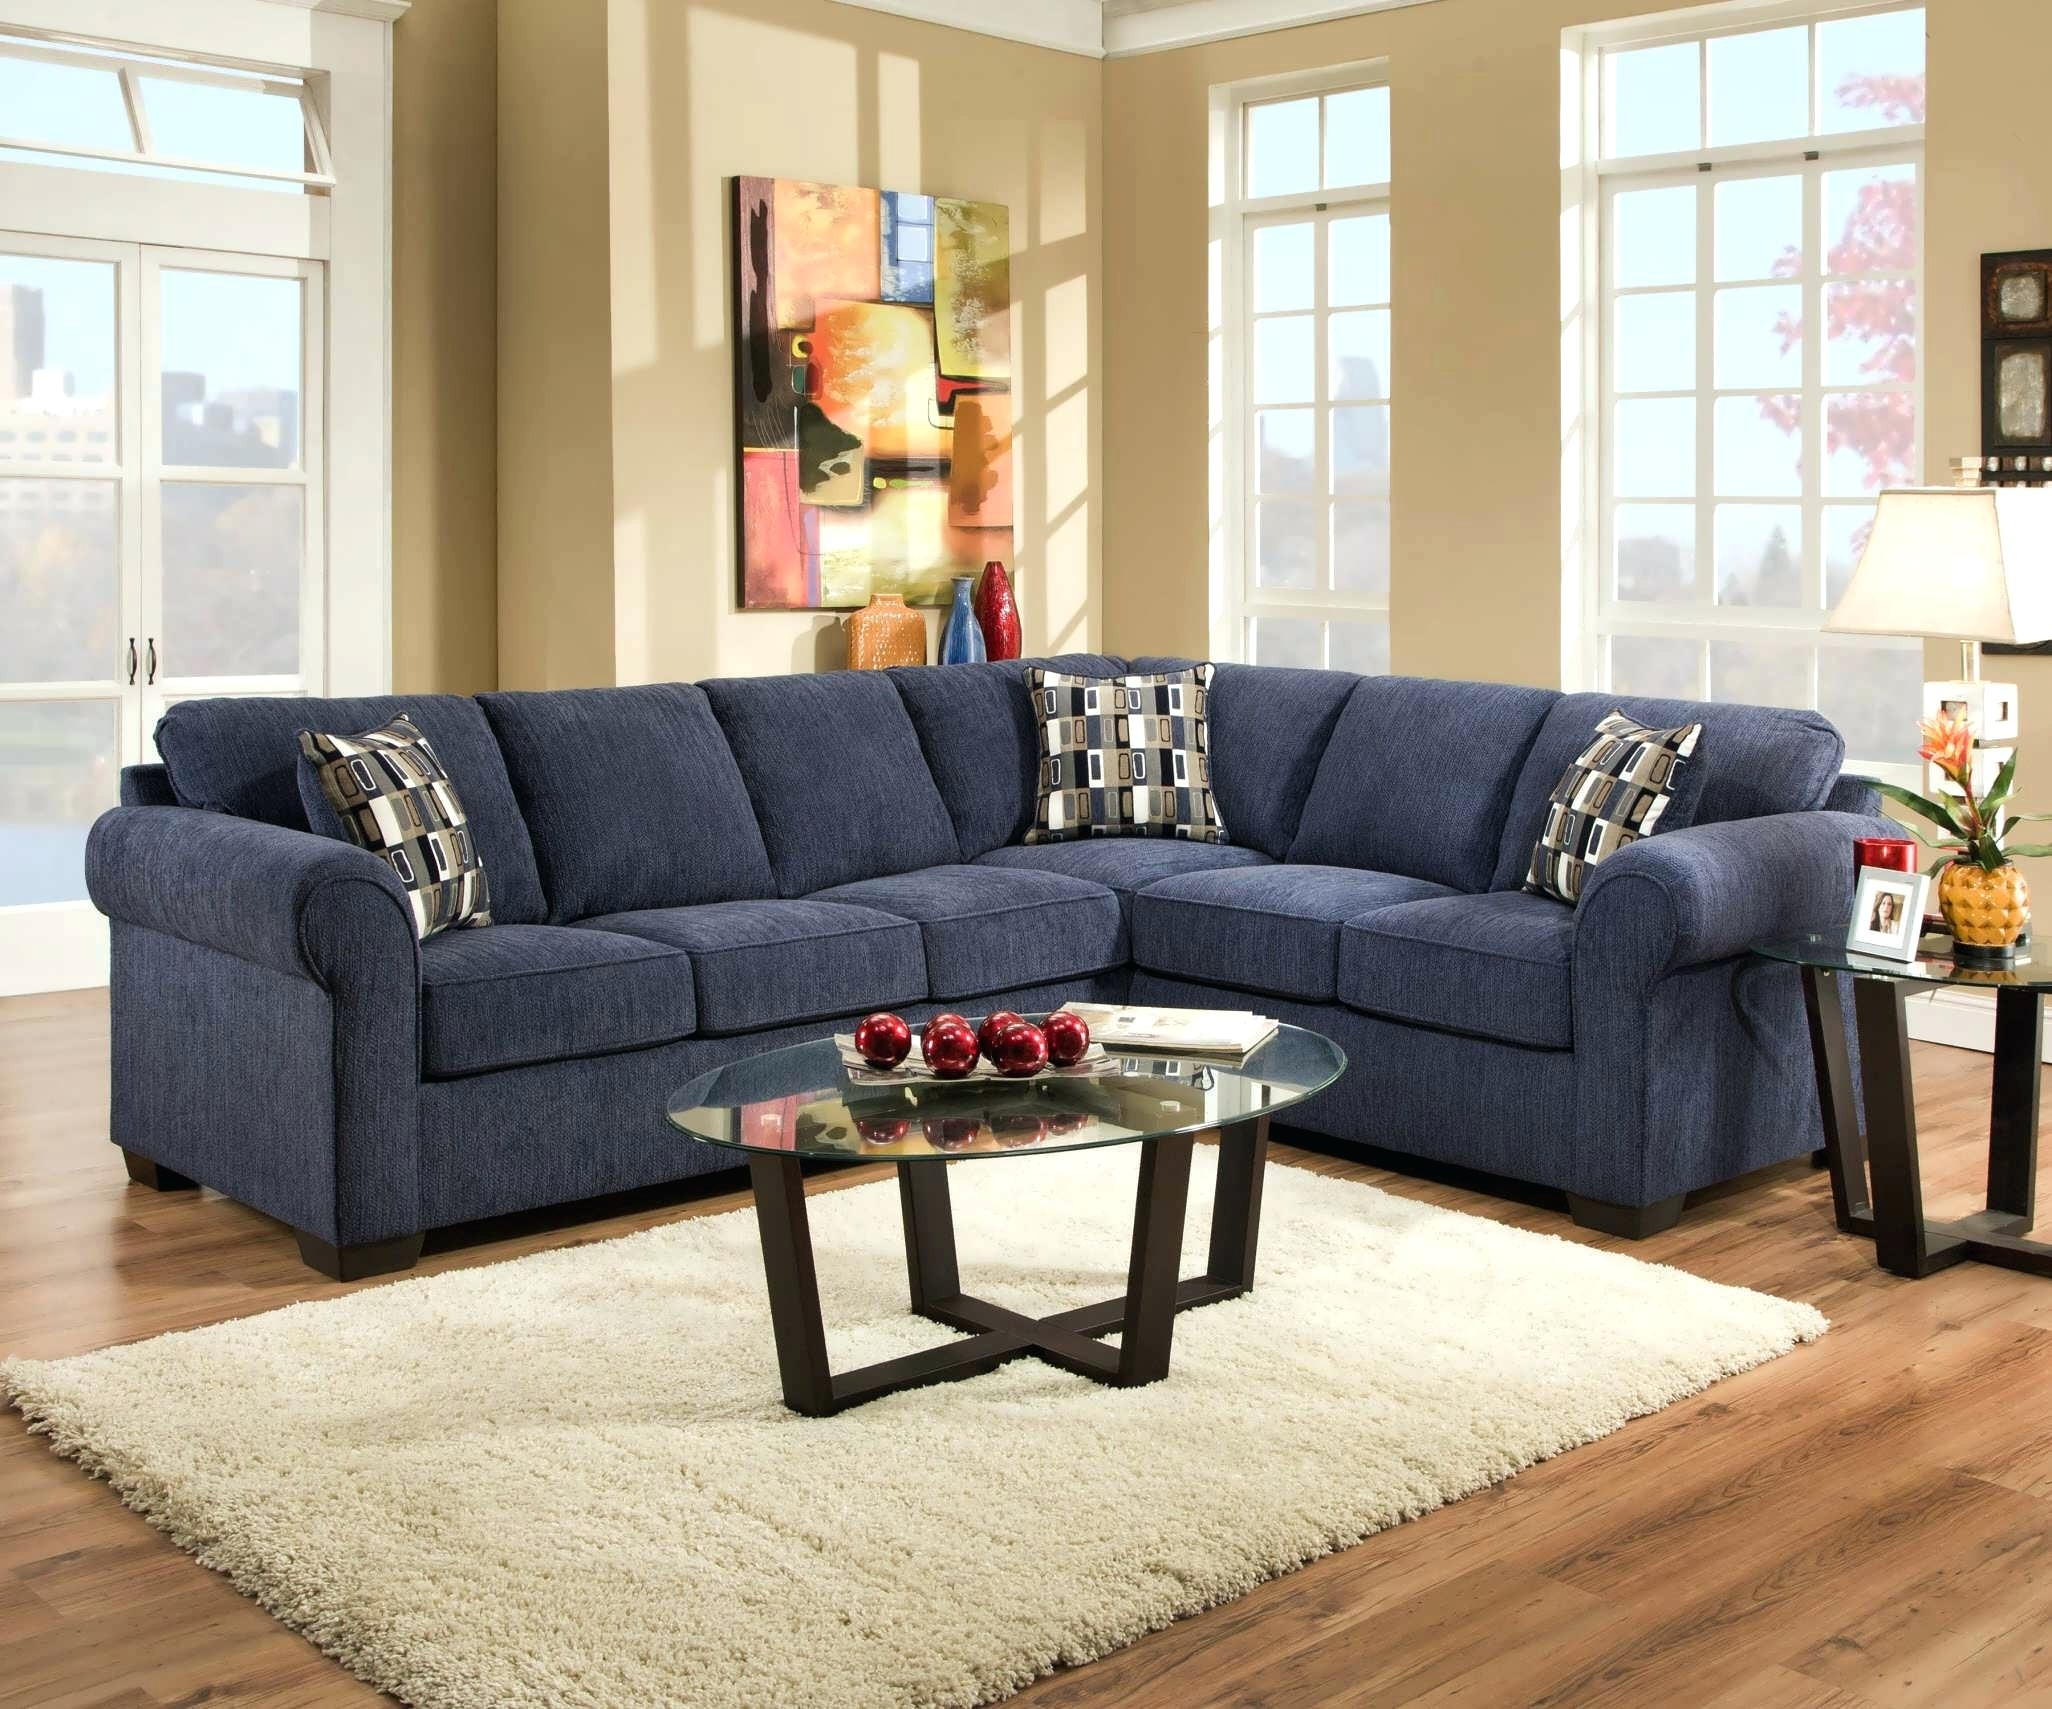 2019 popular canada sale sectional sofas - Cheap living room furniture toronto ...